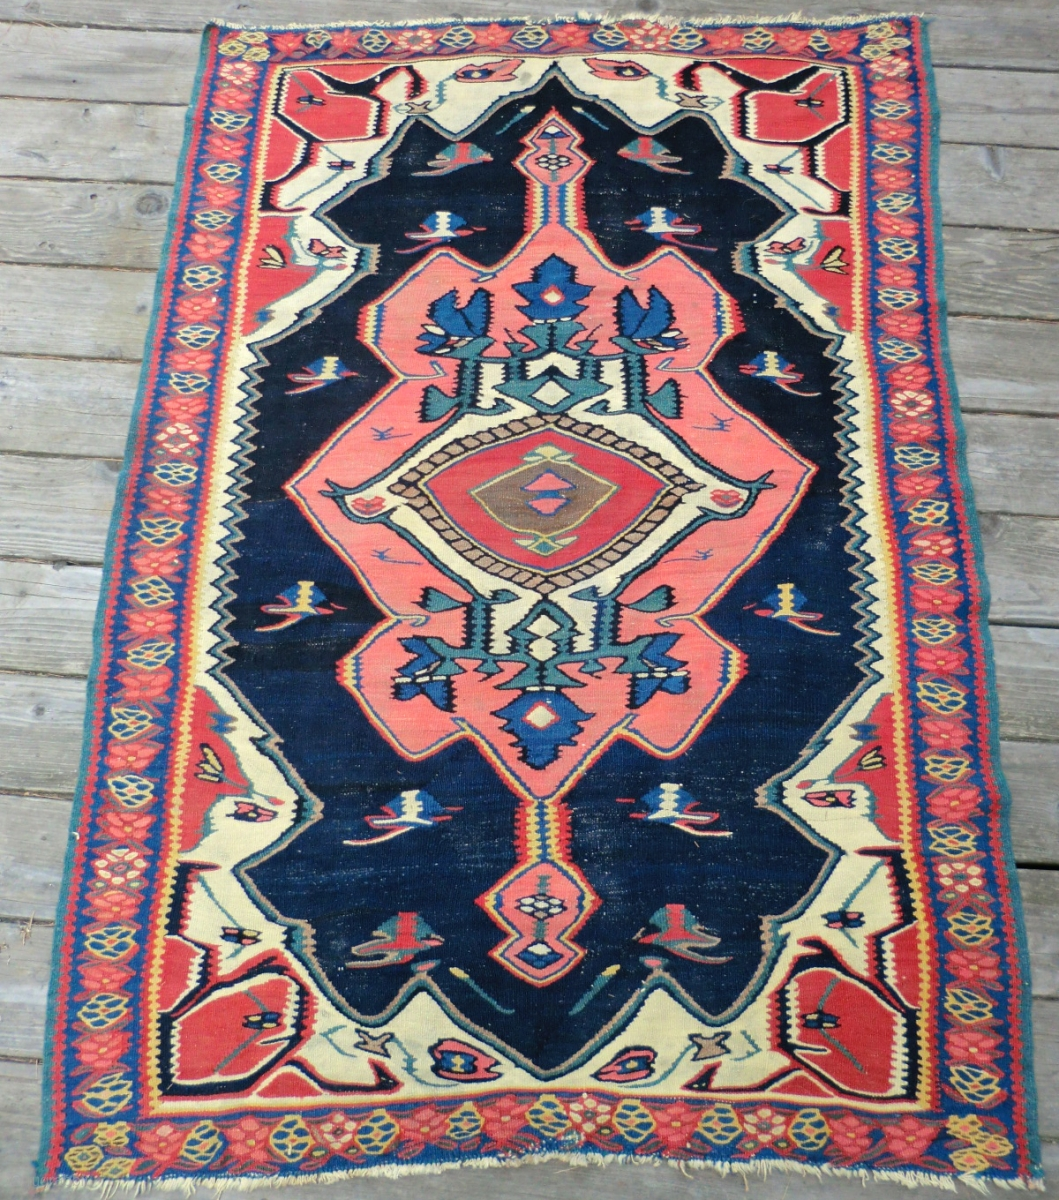 Antique Bijar Kilim Rug 3.5 Ft. X 5.25 Ft. A Dynamic